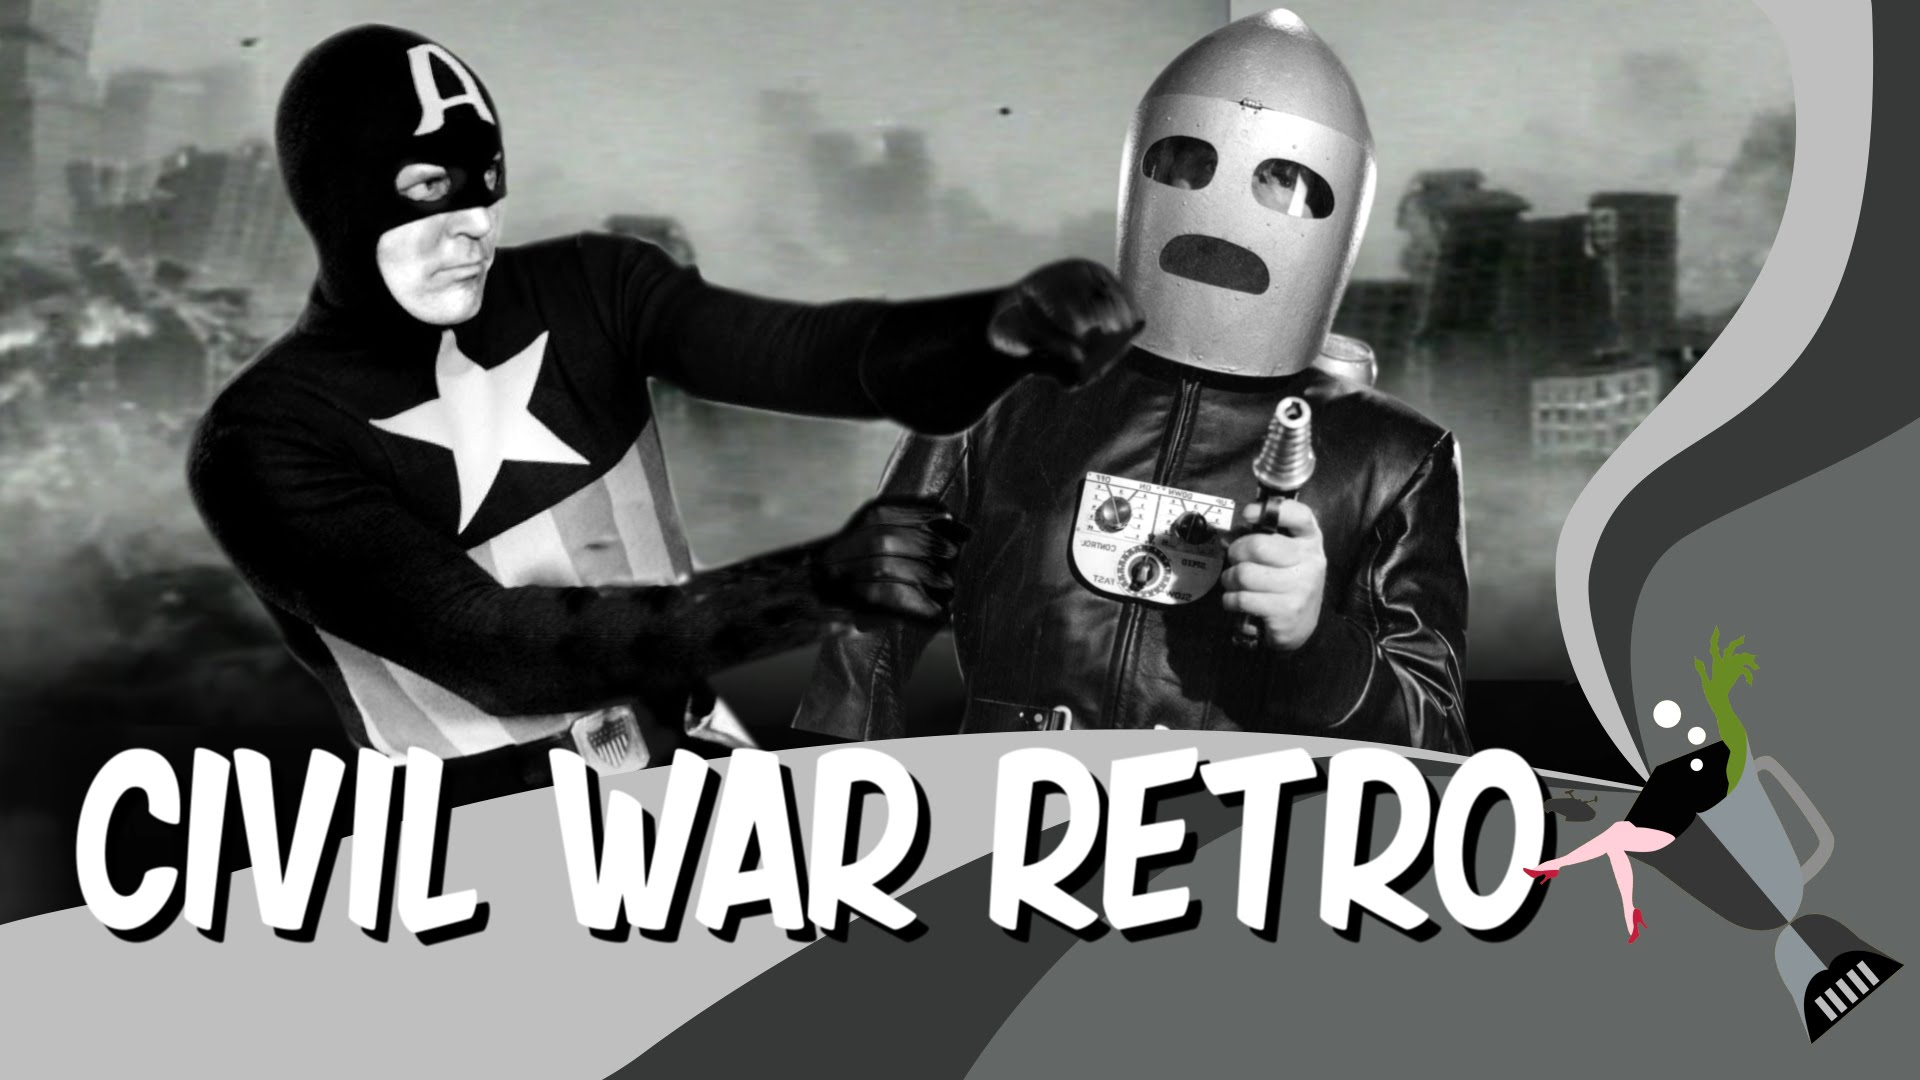 ed wood captain america civil war